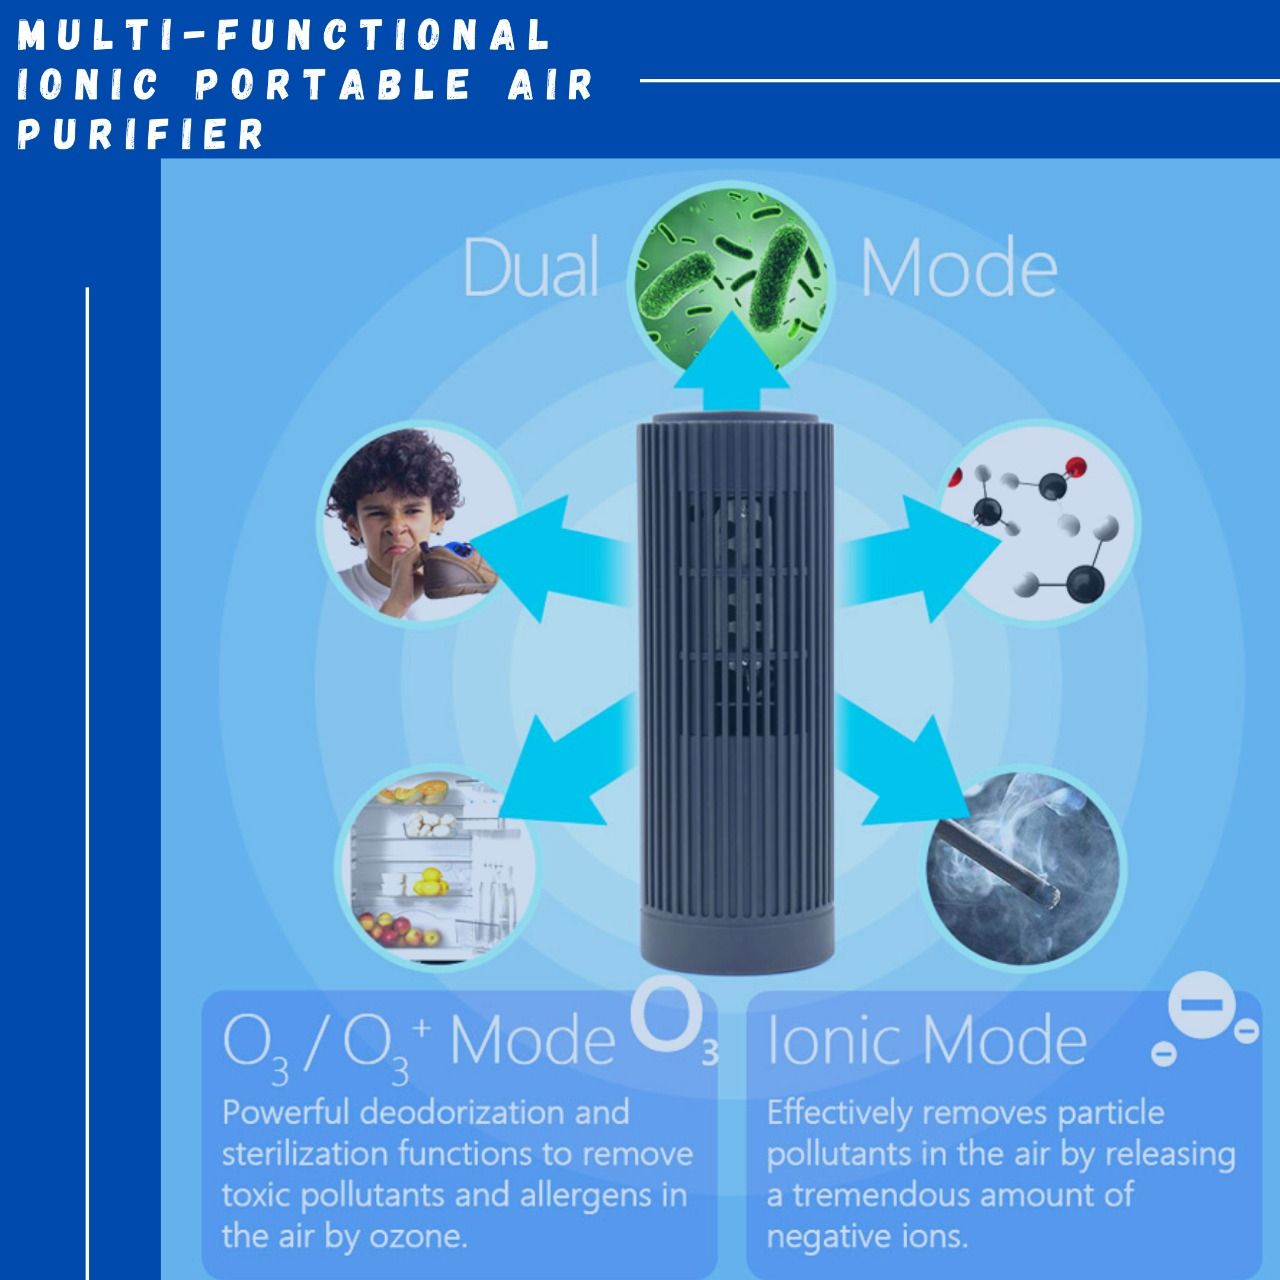 Multifunctional Ionic Portable Air Purifier Shop now